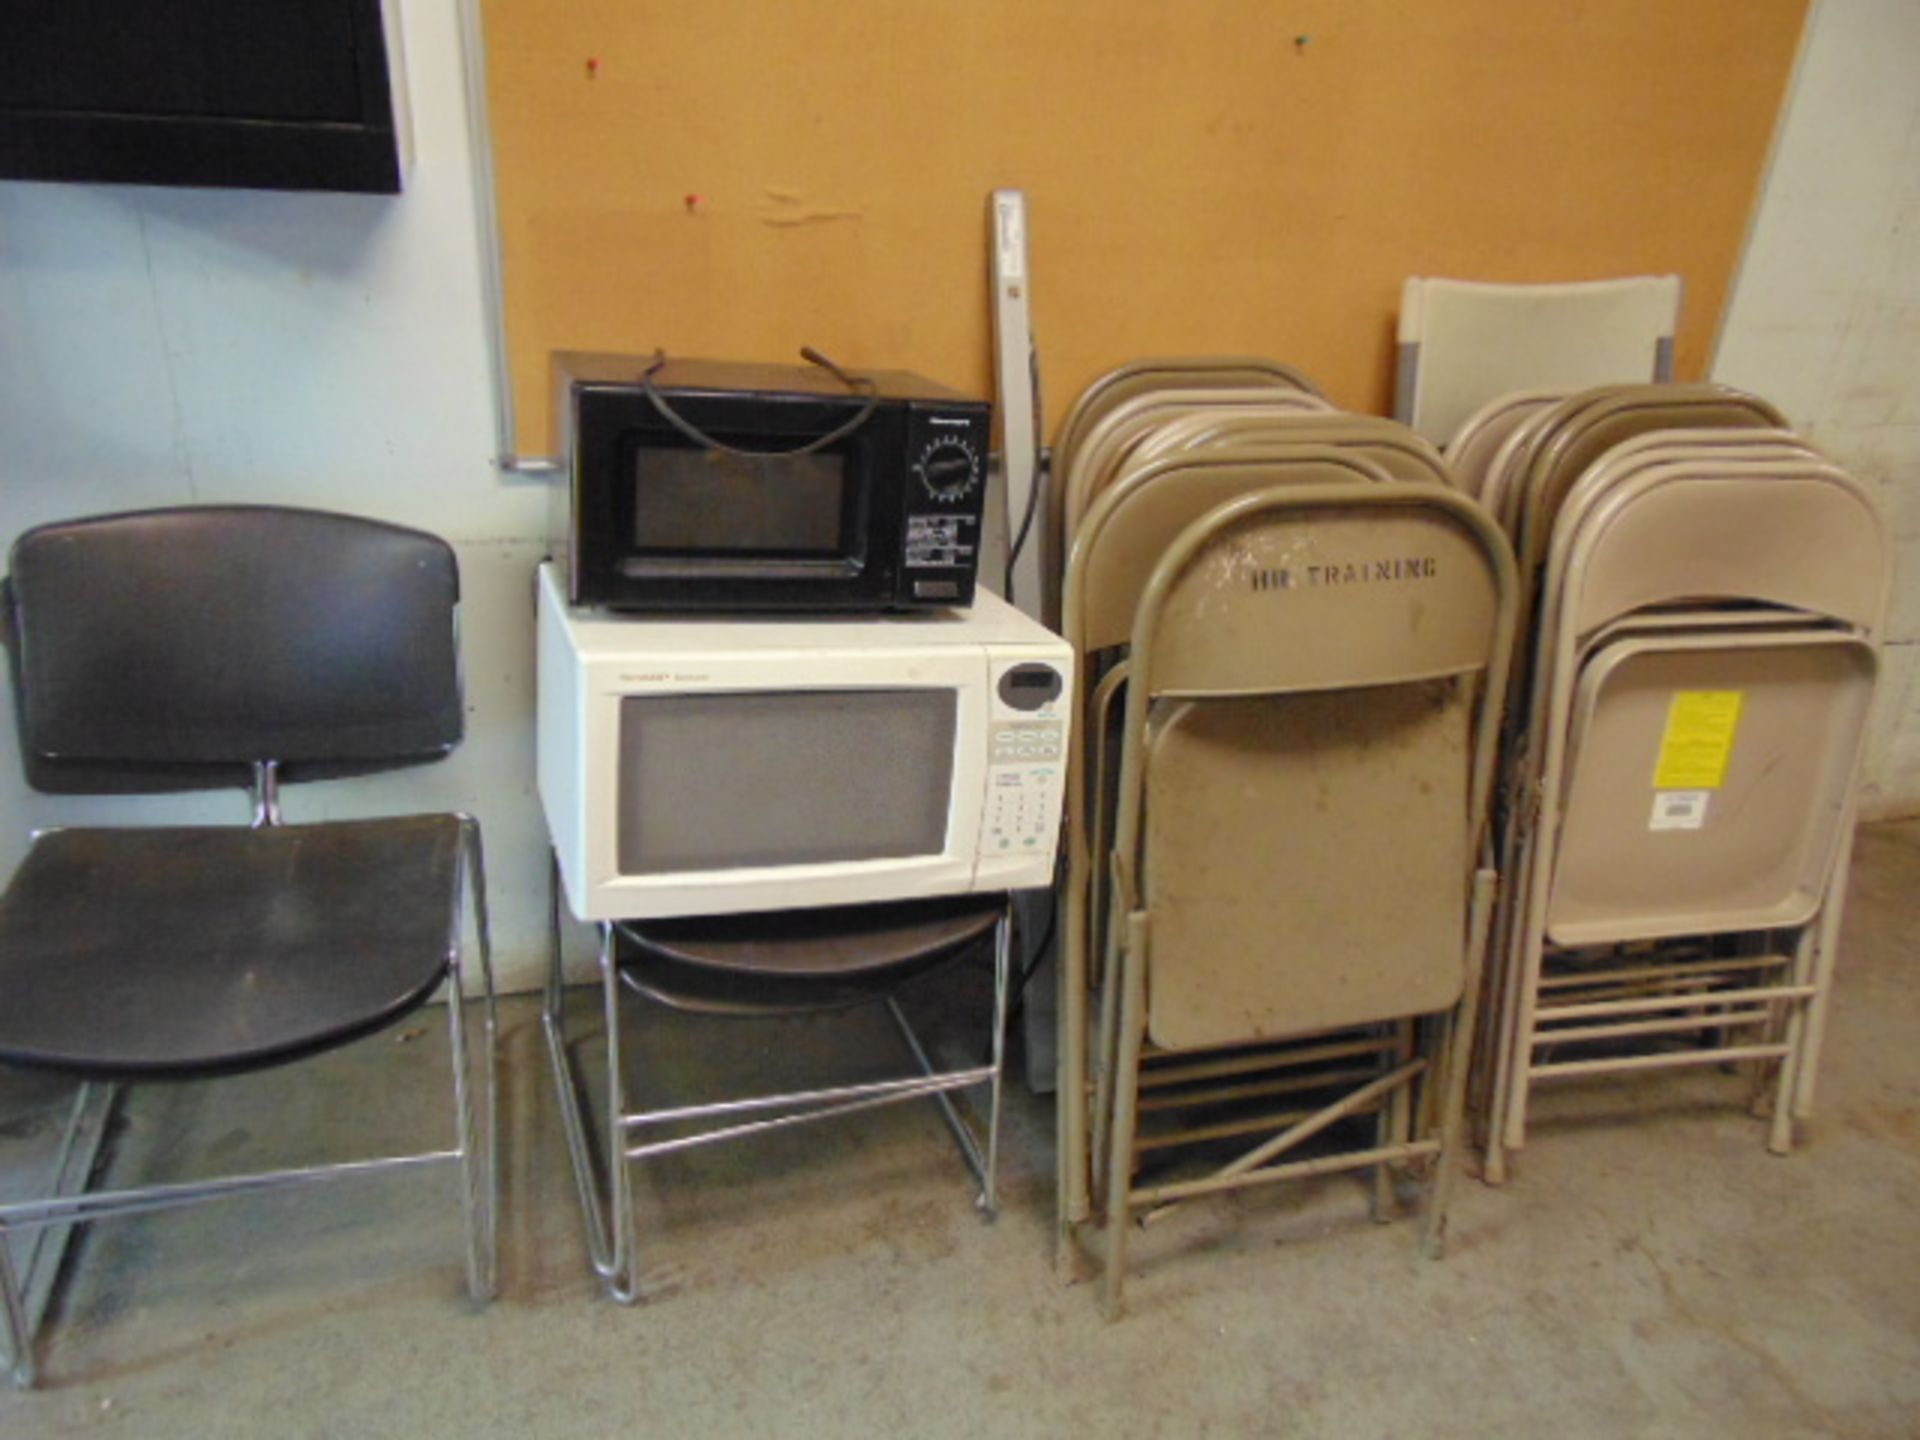 Lot 3124 - LOT CONSISTING OF: (11) desks & tables, chairs, microwave ovens (cannot be removed until contents